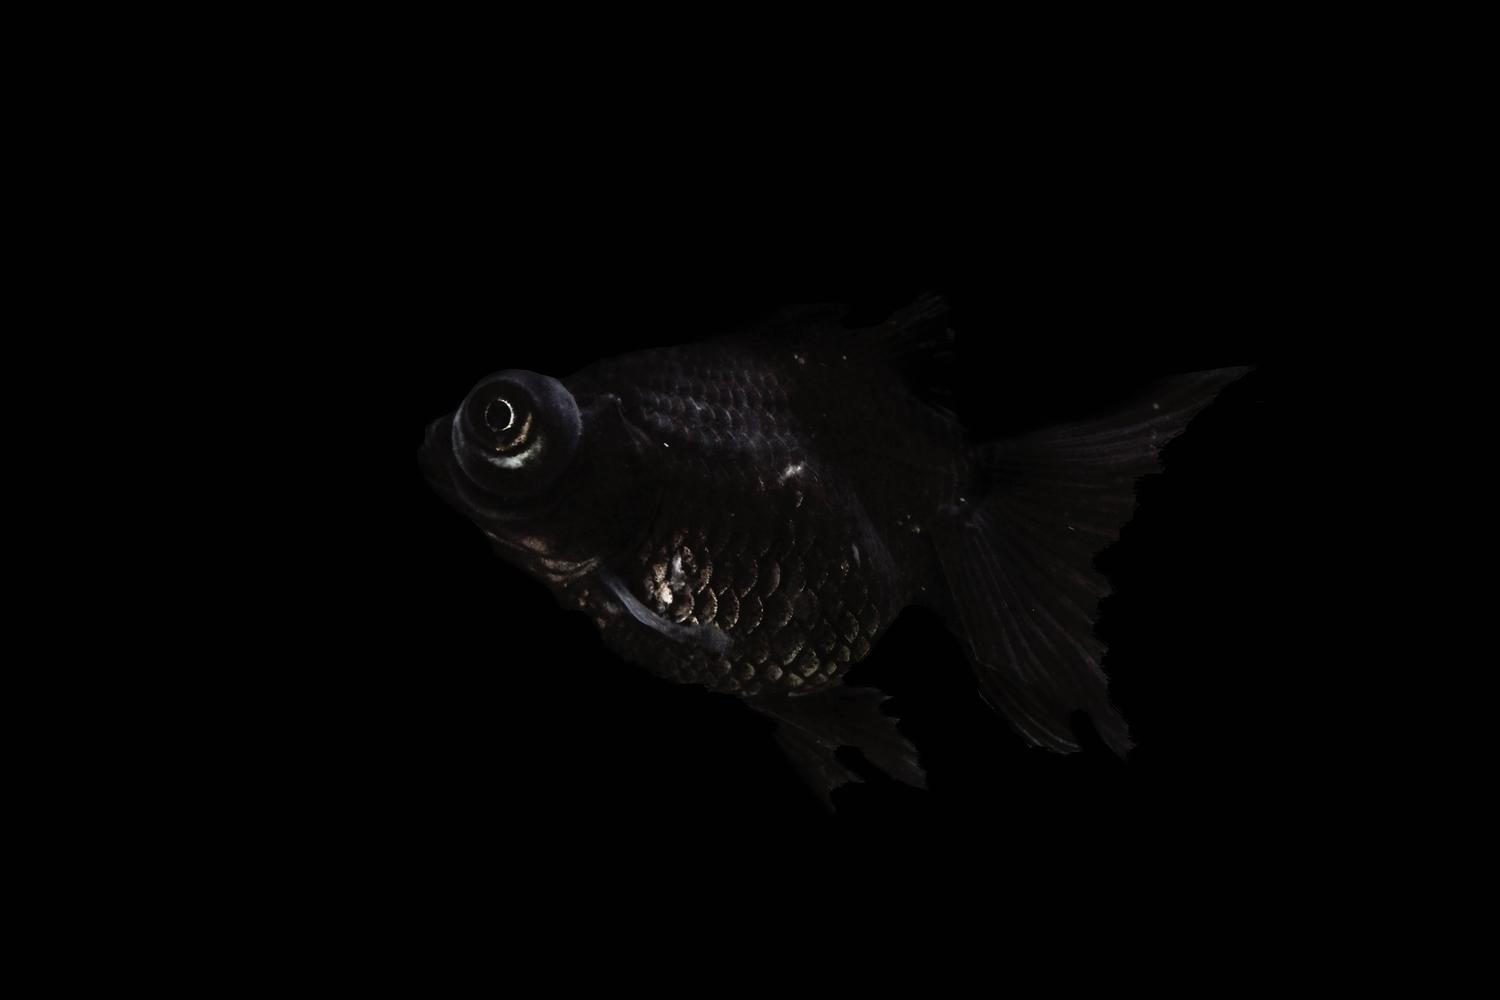 Netta laufer fish from the black beauty series photograph for sale at 1stdibs